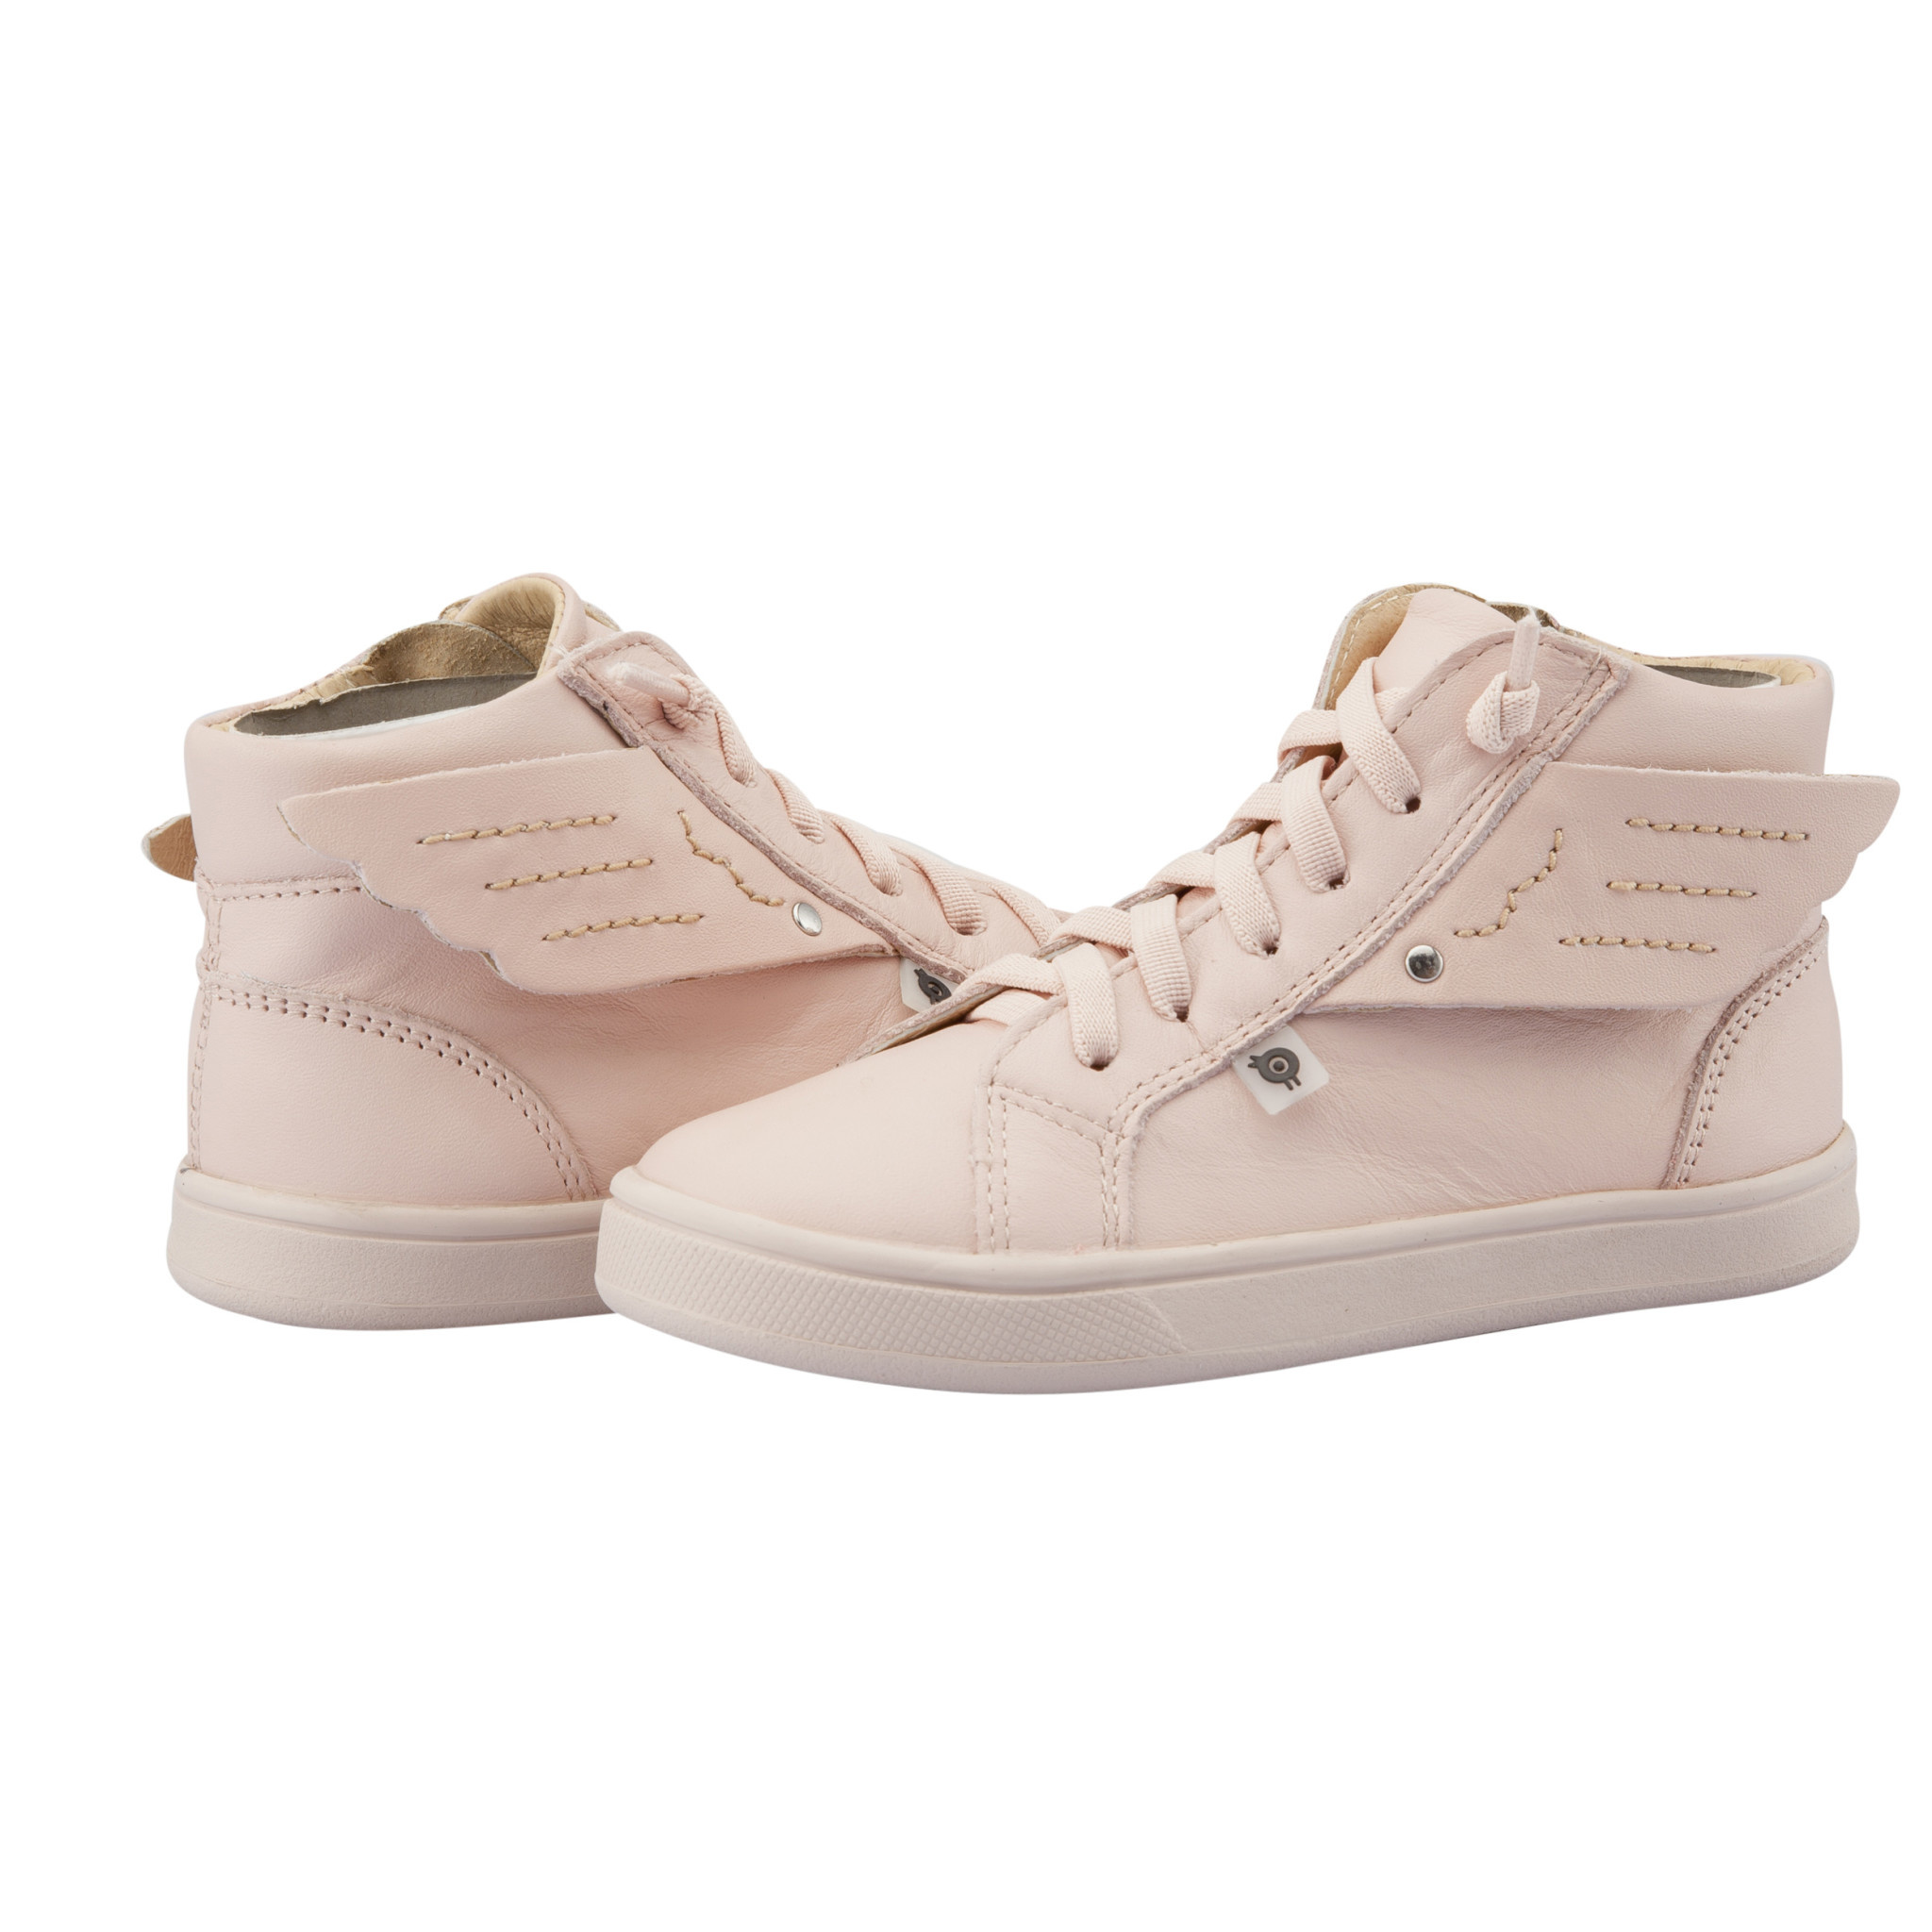 Oldsoles Oldsoles Local Powder Pink High Tops